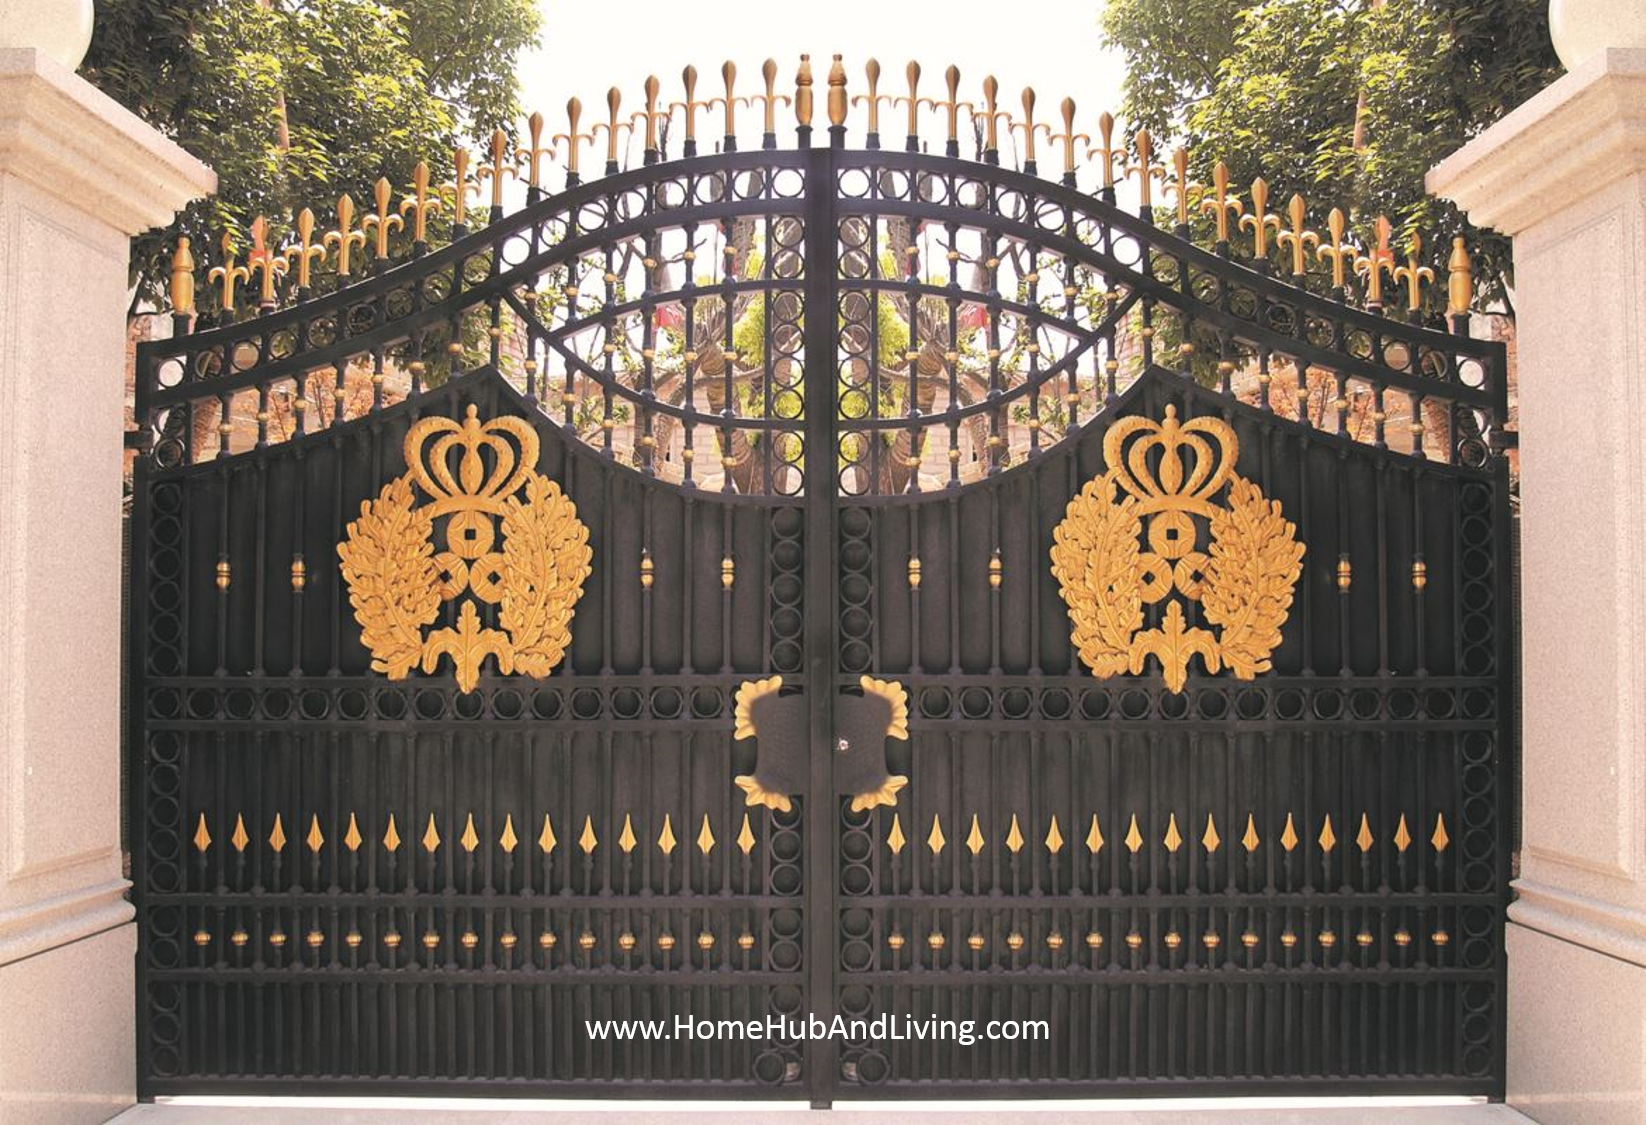 Singapore Wide Range Offering Customize Designs Of Balcony Staircase Railings Fences Metal Doors Driveway Gates Entrance Gates Gazebos And Metal Artworks From Aluminium Wrought Iron Material Information Home Hub And